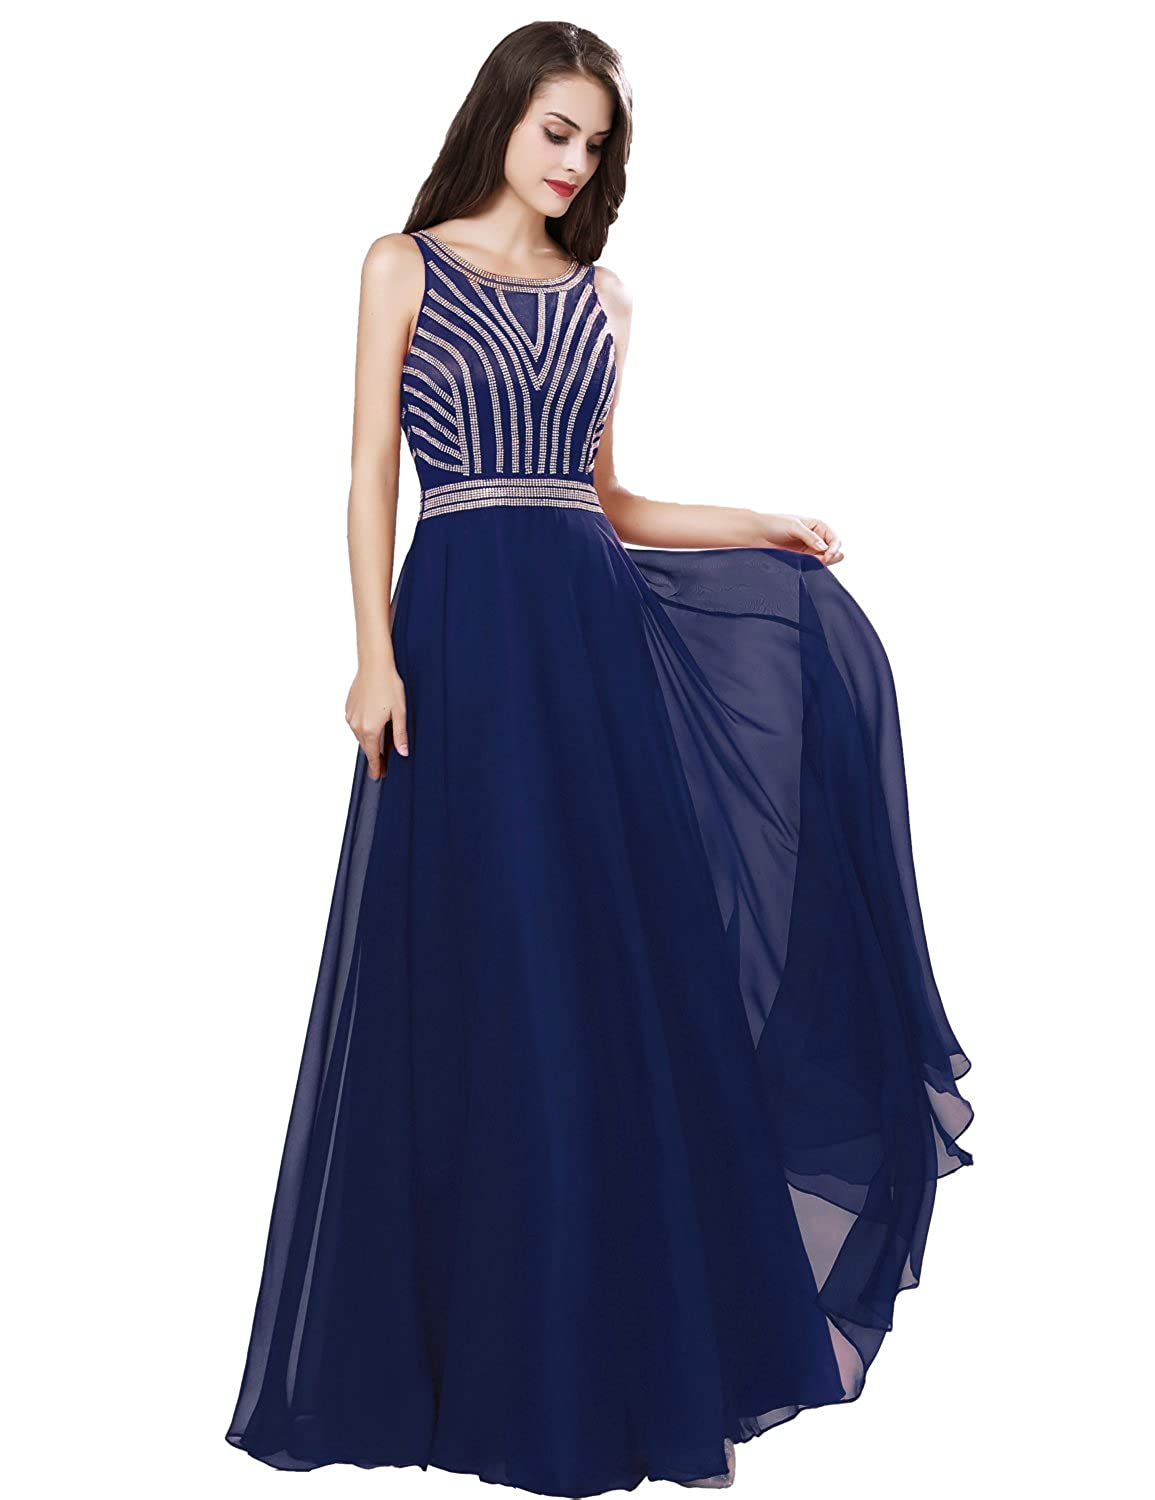 411navy bluee Sarahbridal Womens Lace Prom Dresses Formal Evening Gown with Half Sleeve SD328